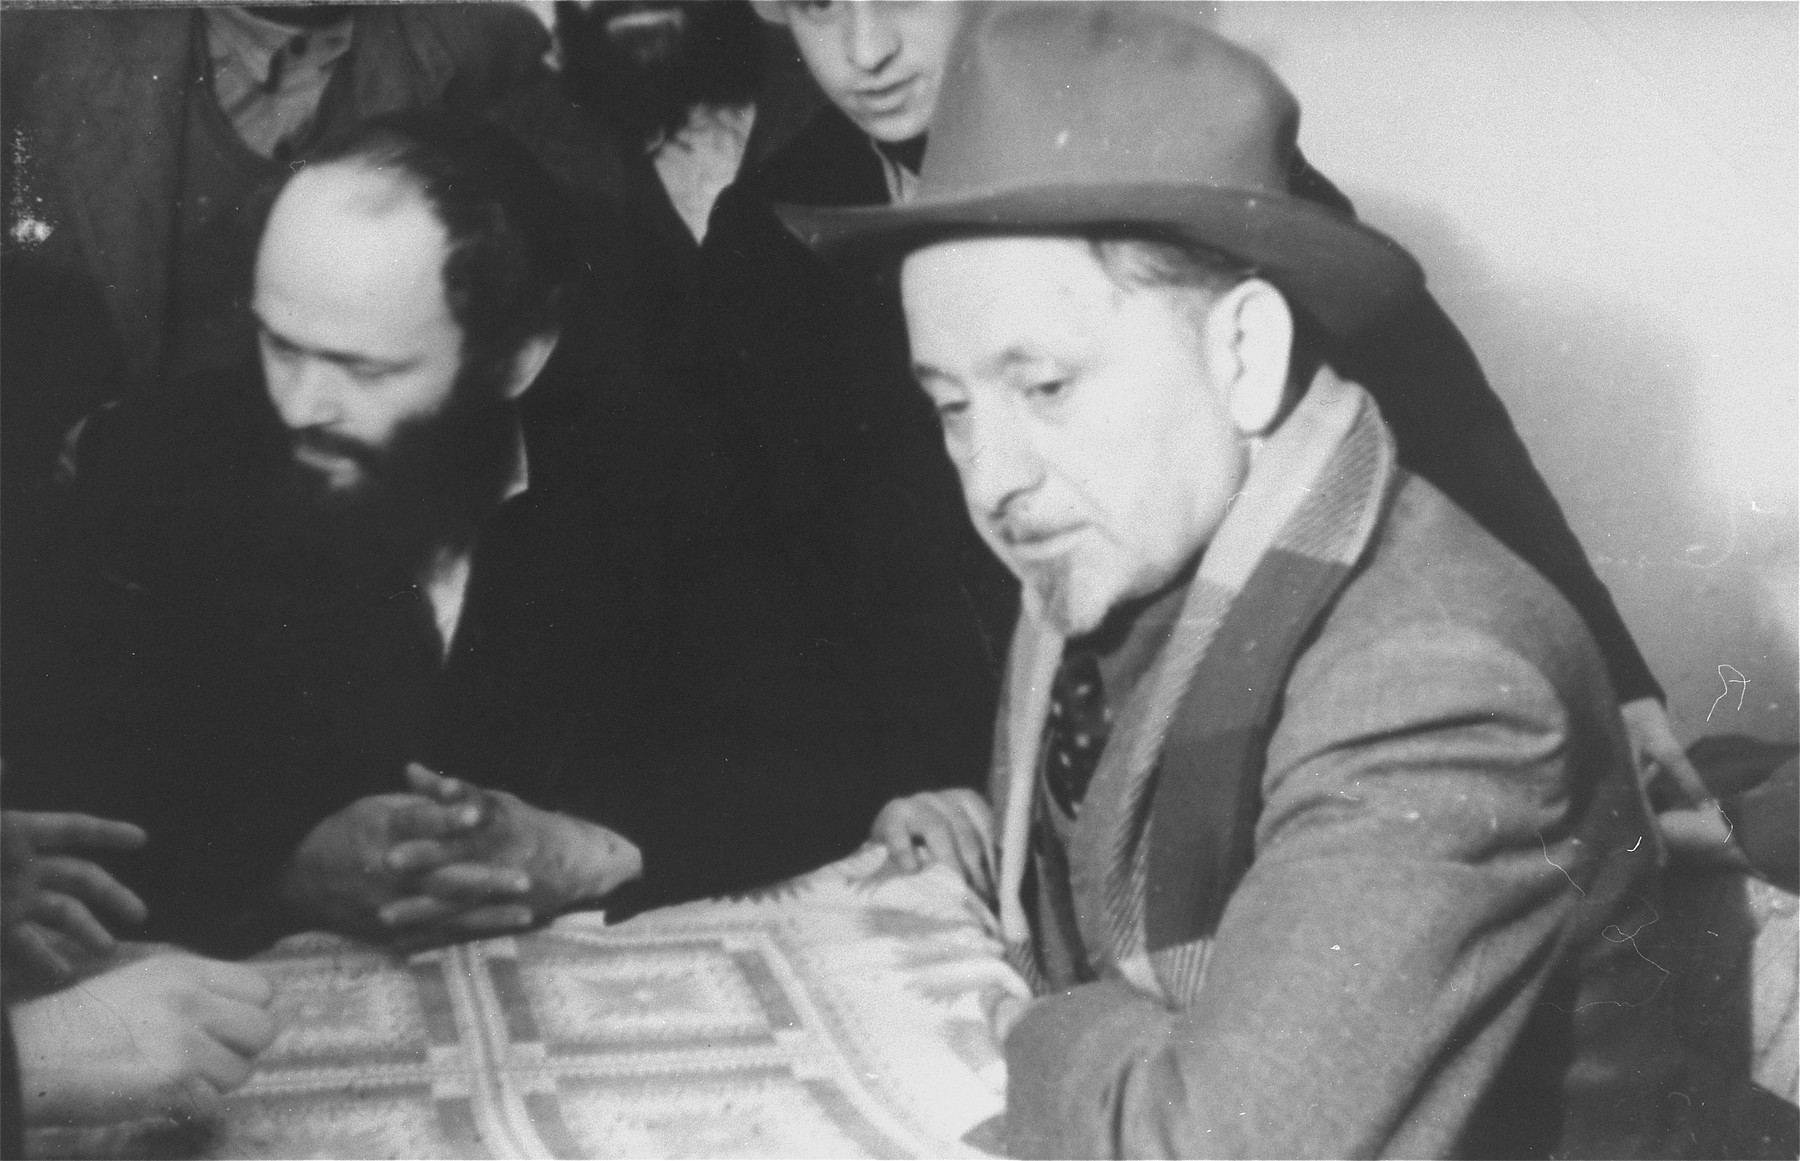 Yeshiva students gather together around a table in the Zeilsheim displaced persons' camp.